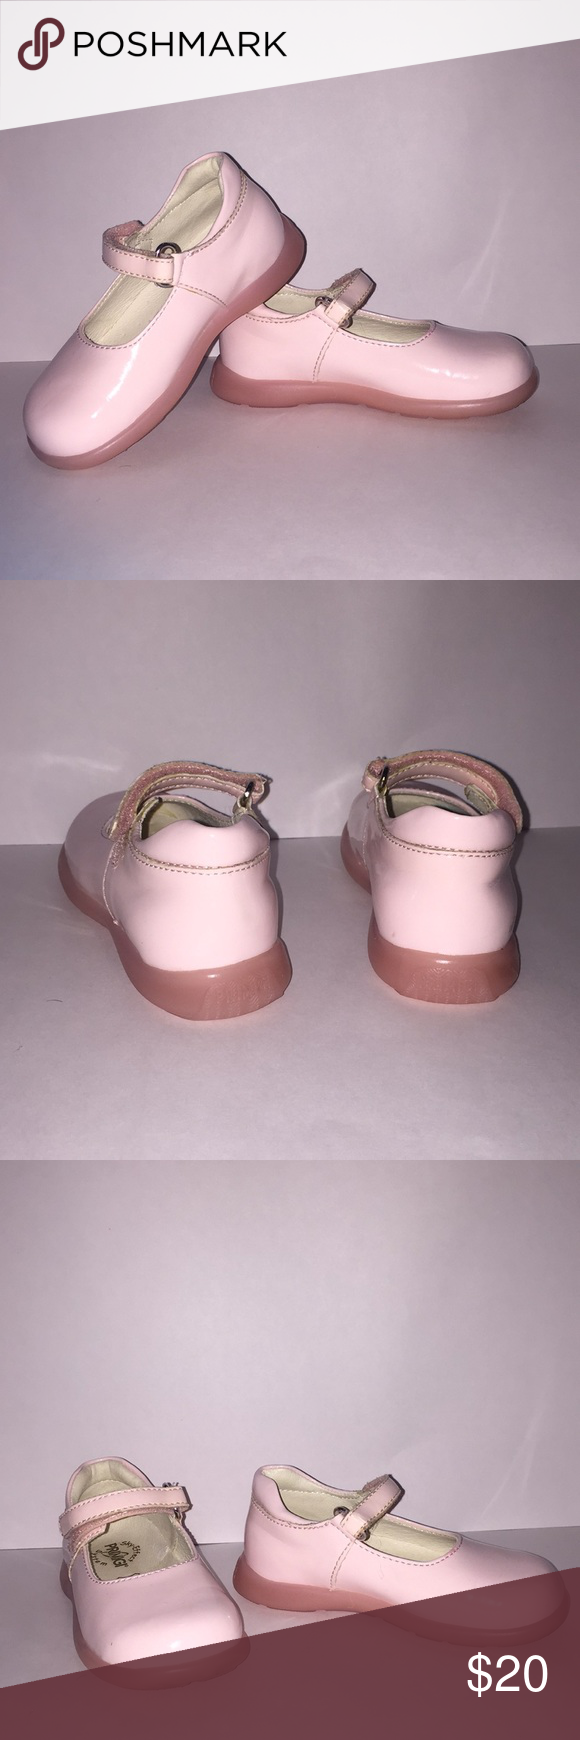 Pink dress shoes for ladies  Pink little girls dress shoes  Girls dress shoes Dress shoes and Girls